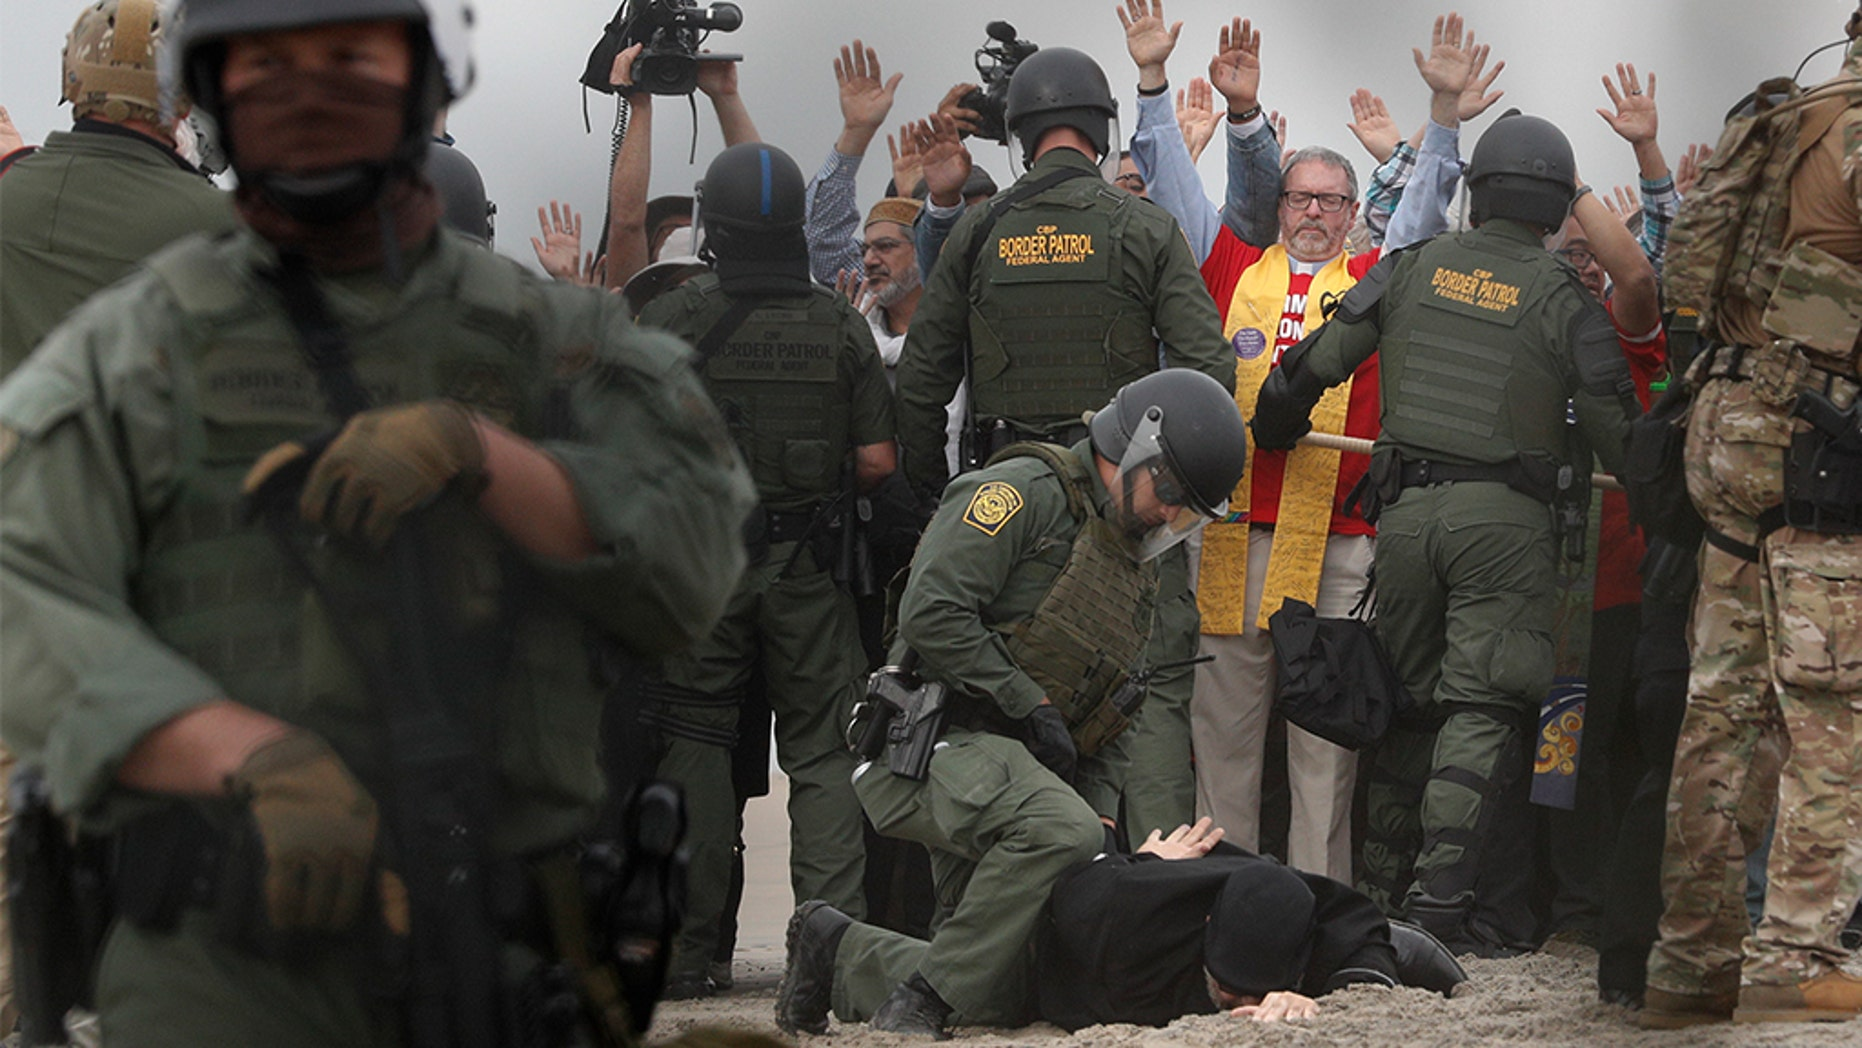 U.S. Border Patrol agents at a pro-migration protest by members of various faith groups showing support for Central American asylum-seekers. (AP Photo/Rebecca Blackwell)